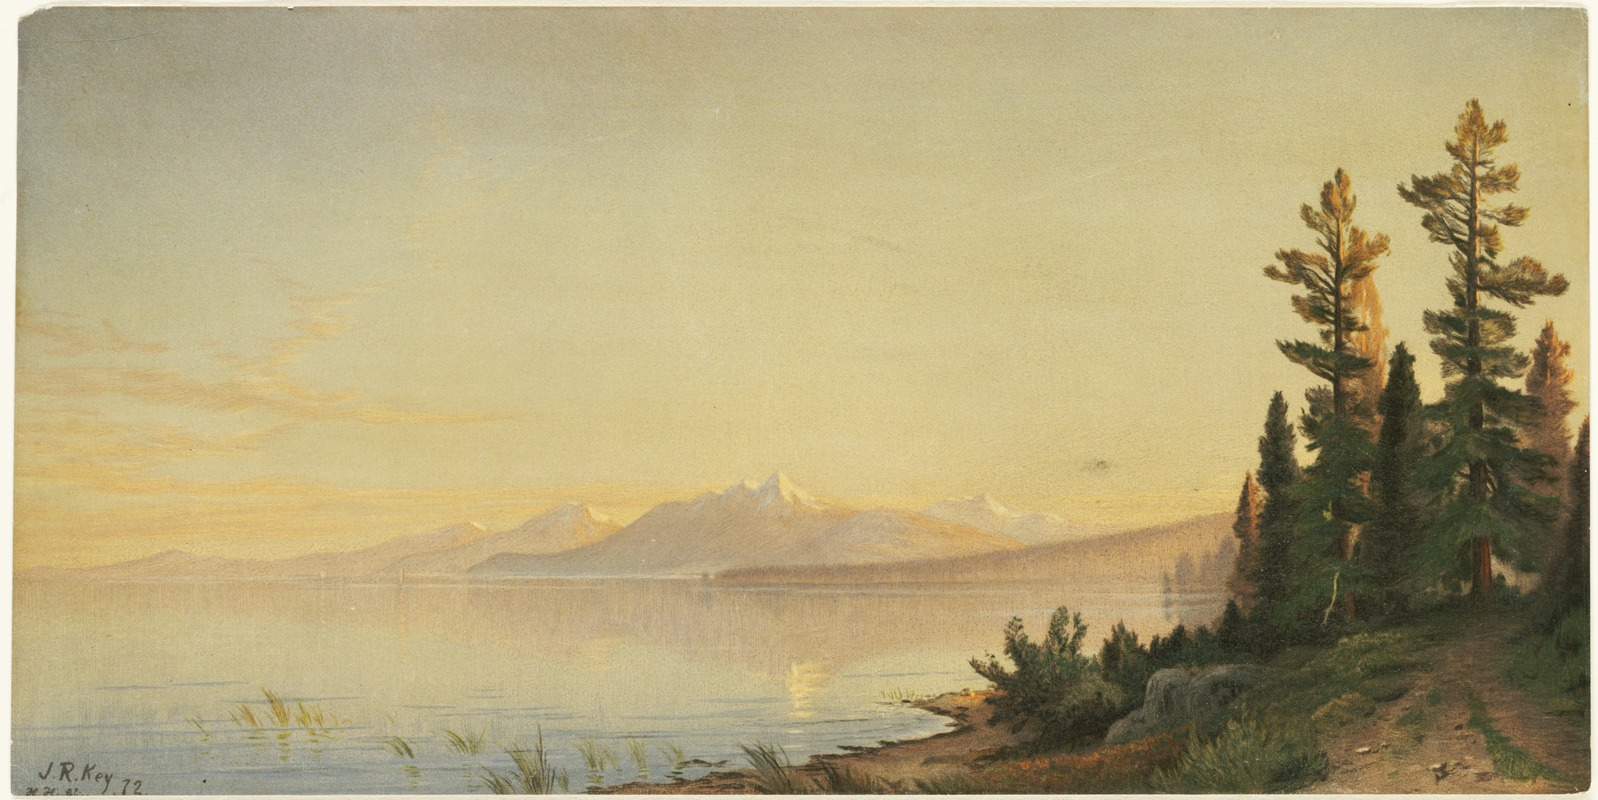 Lake Tahoe, Looking Southwest